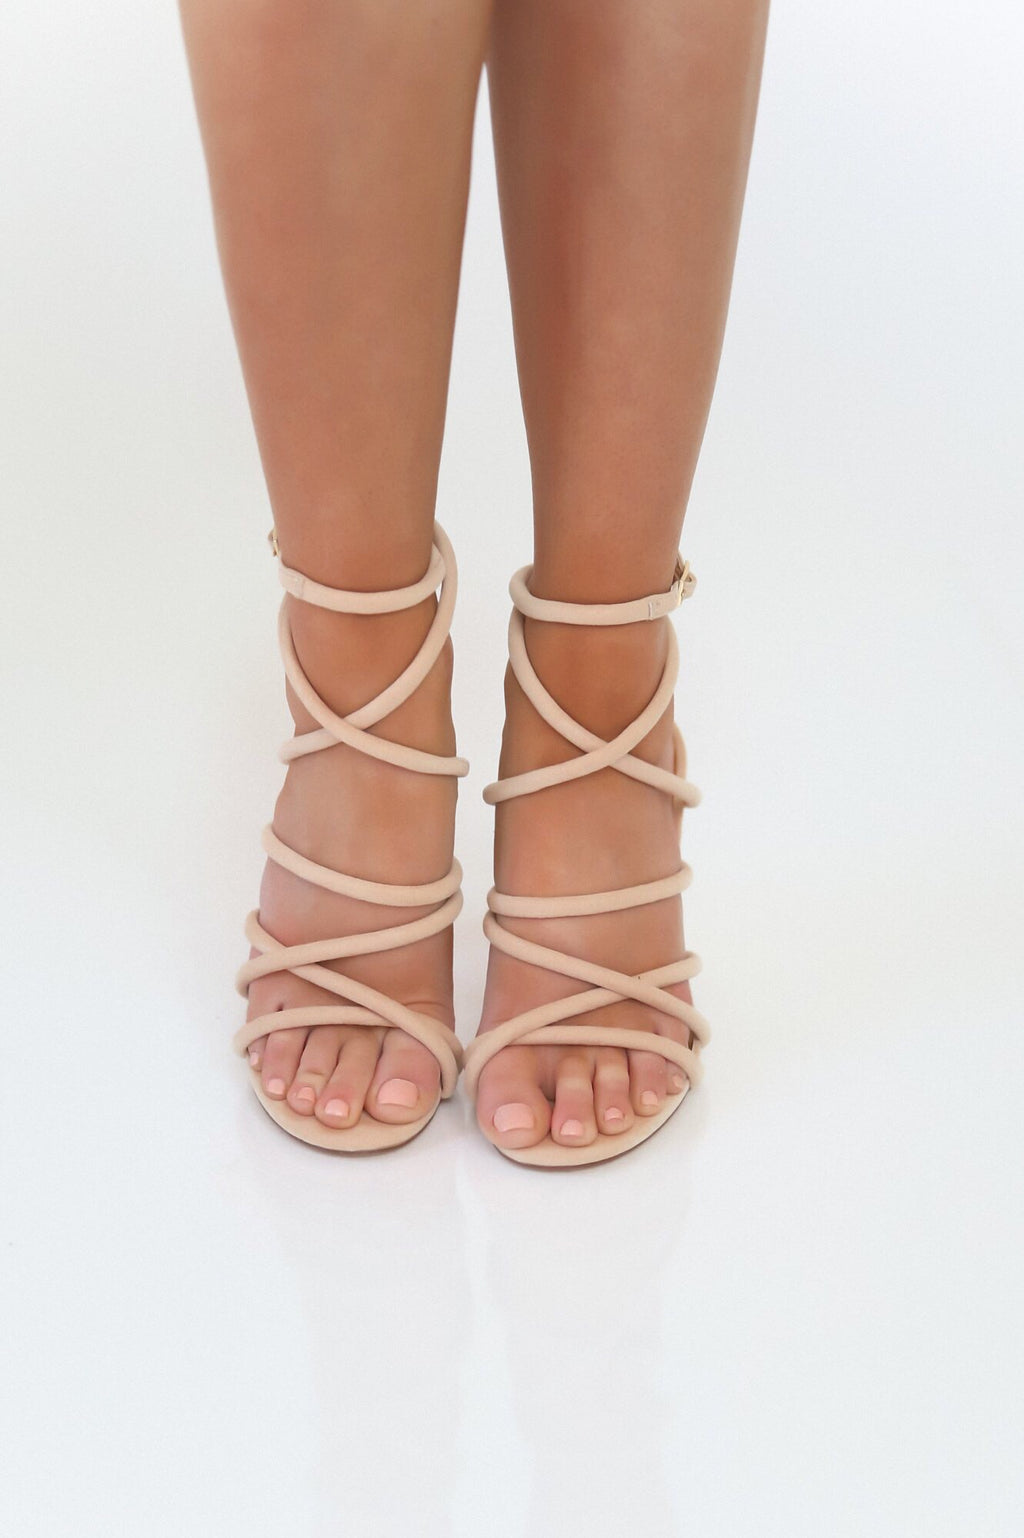 Stacked Bundles Strappy Heels - llacie